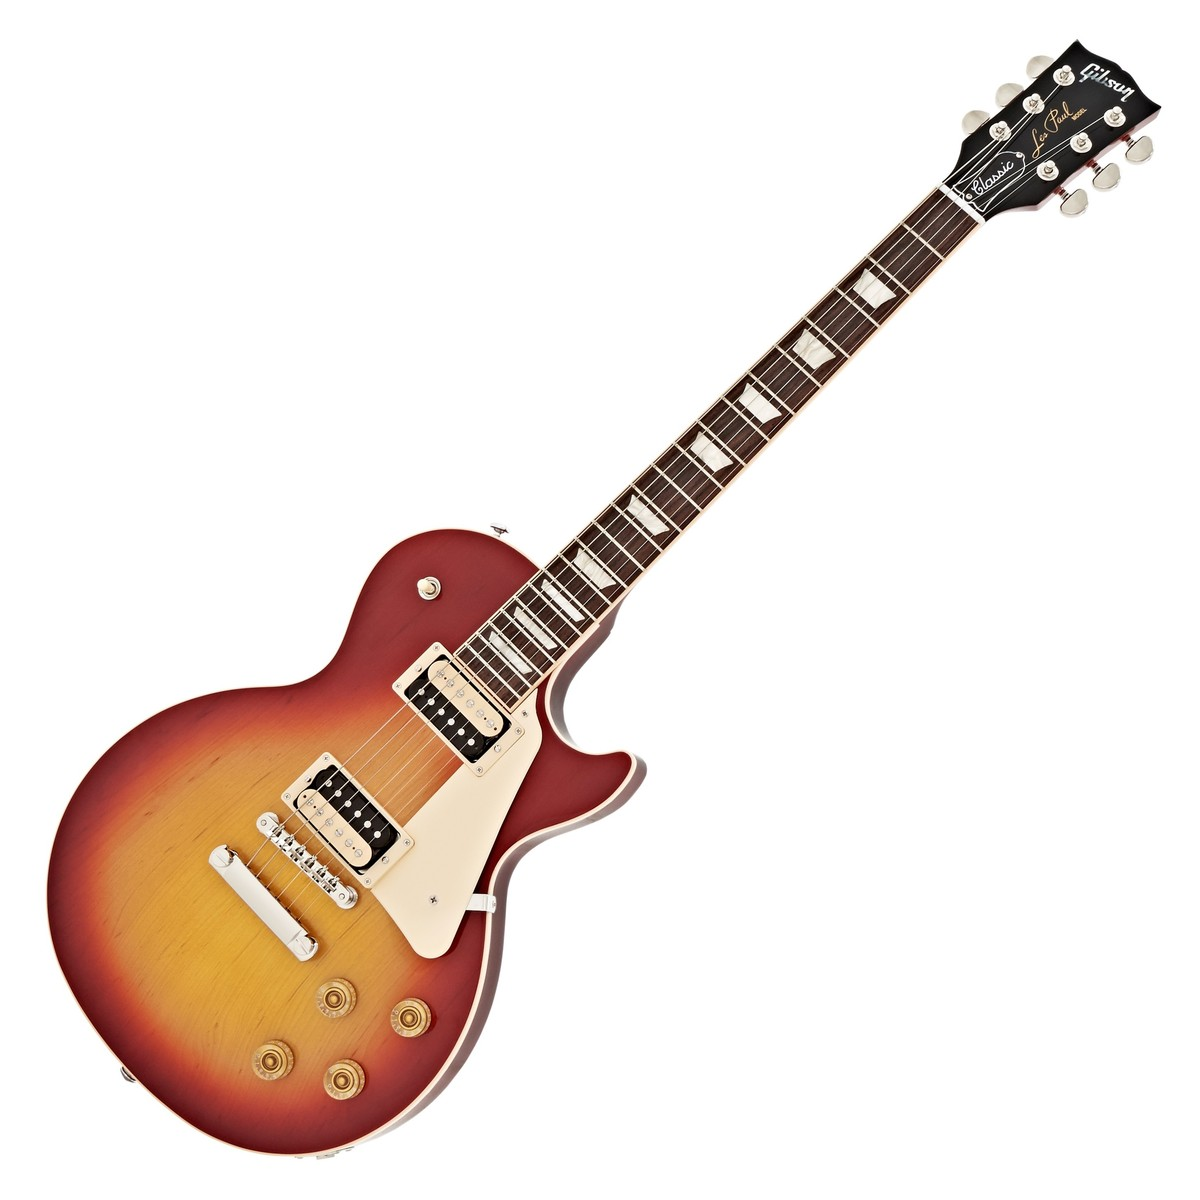 gibson les paul classic t 2017 cherry sunburst at. Black Bedroom Furniture Sets. Home Design Ideas